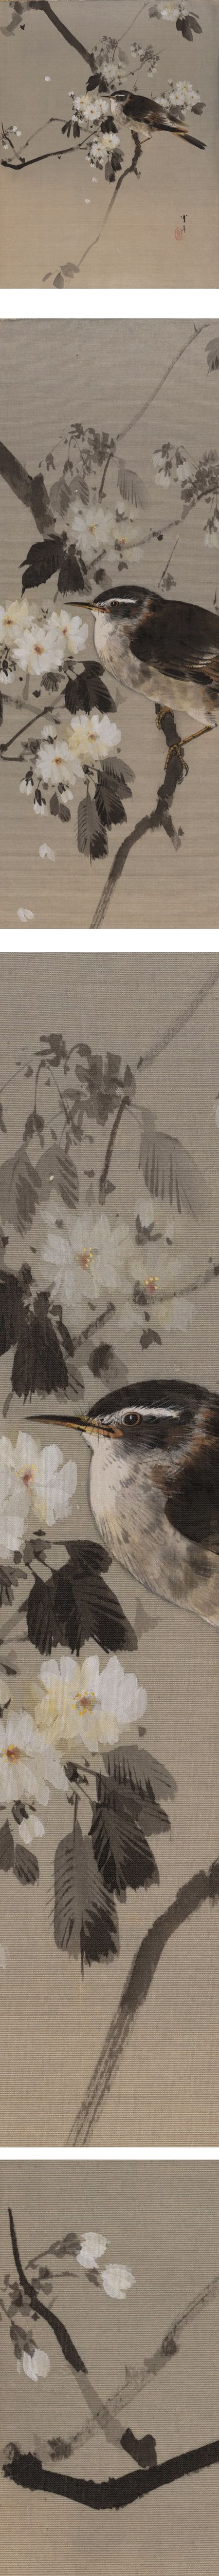 Birds of a Flowering Branch, Watanabe Seite, ink and color on silk